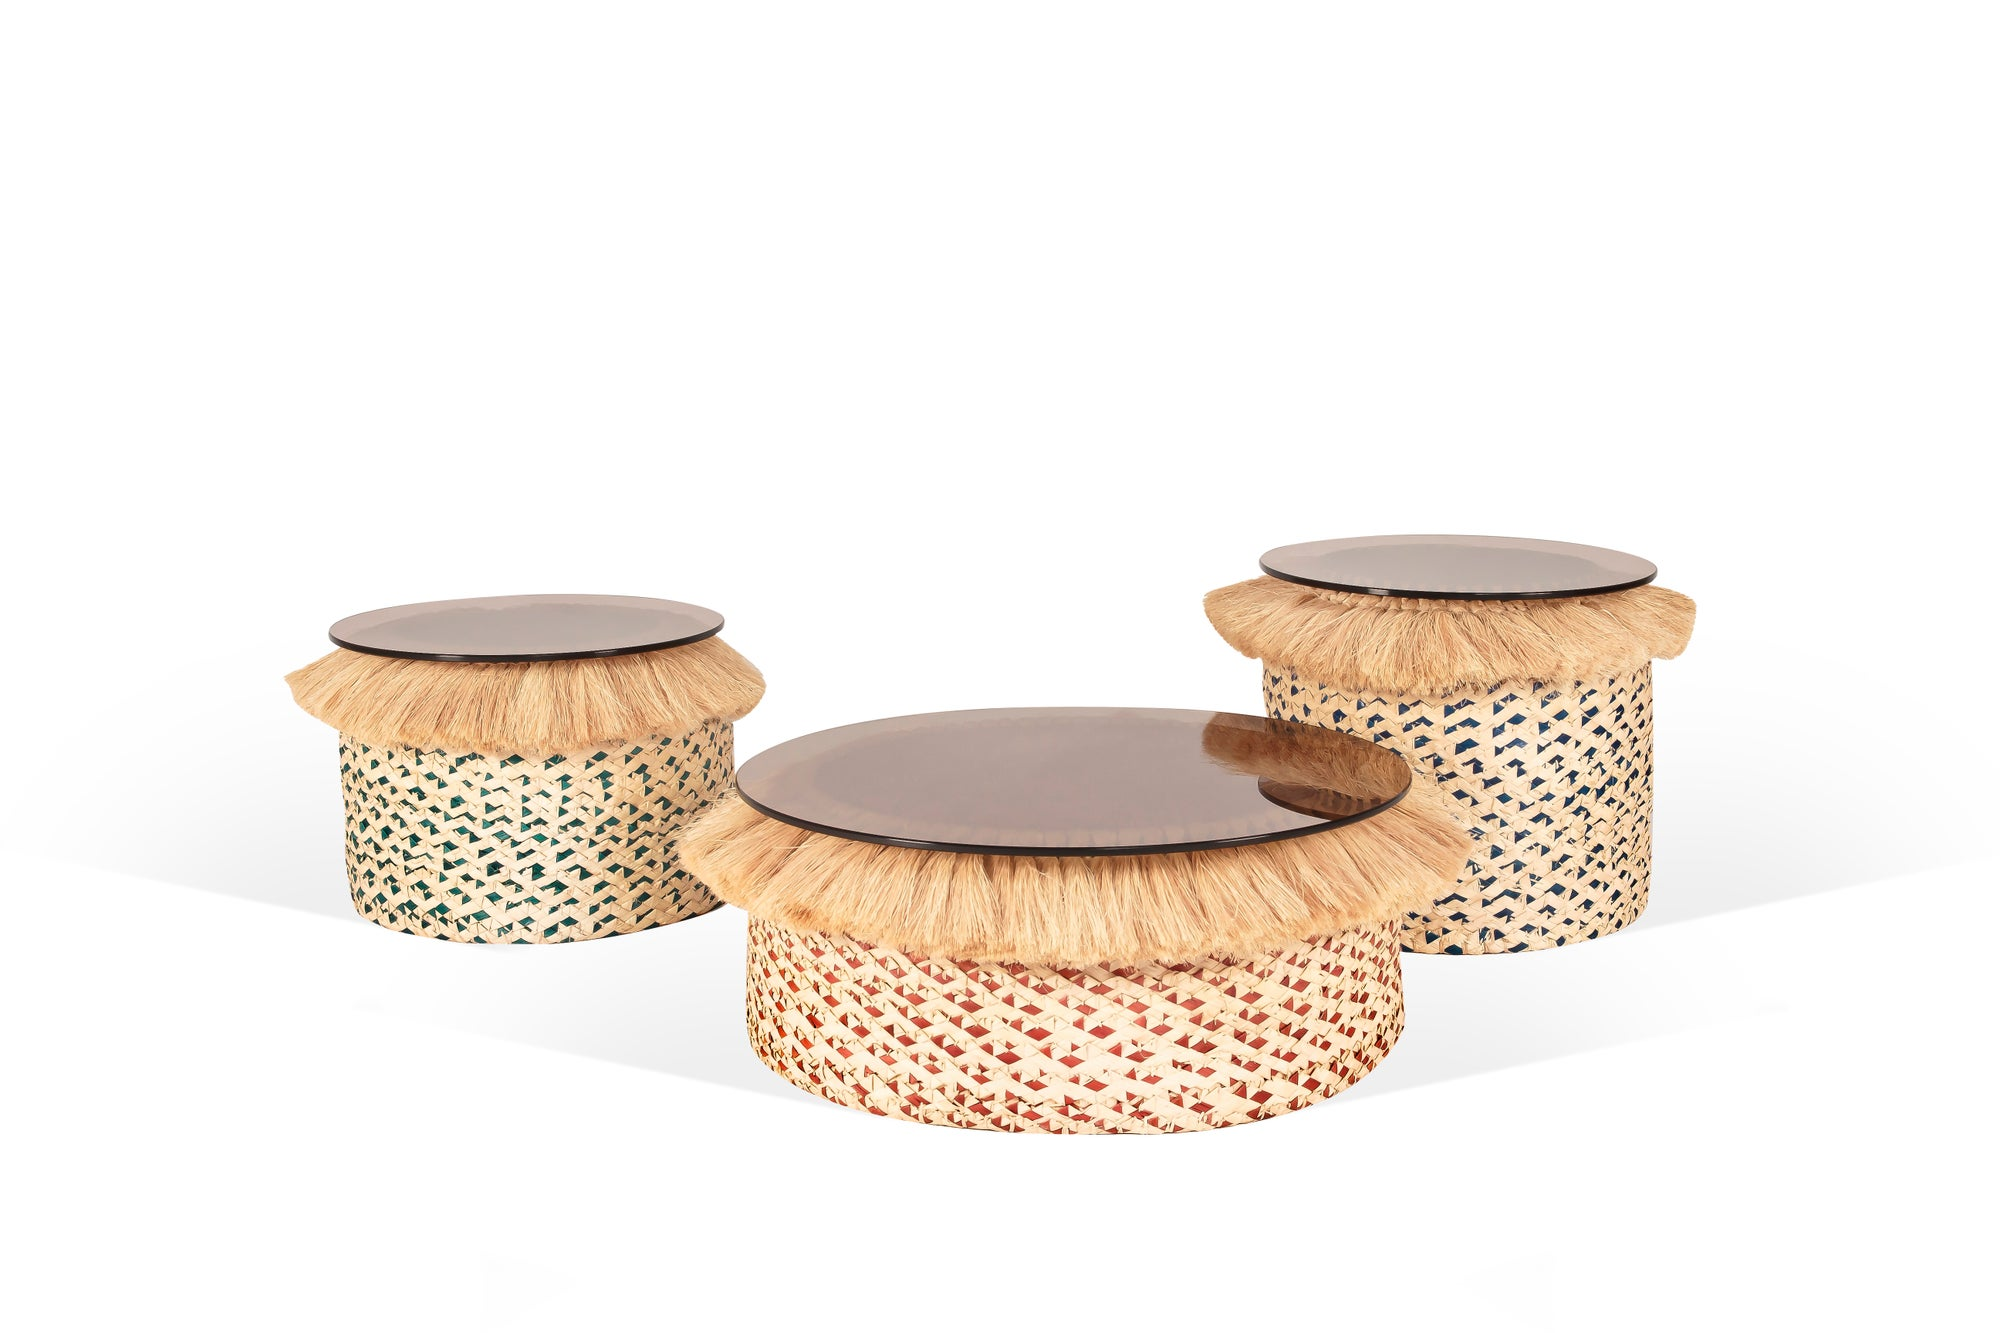 Image of JOIAS Tribo table~ Large